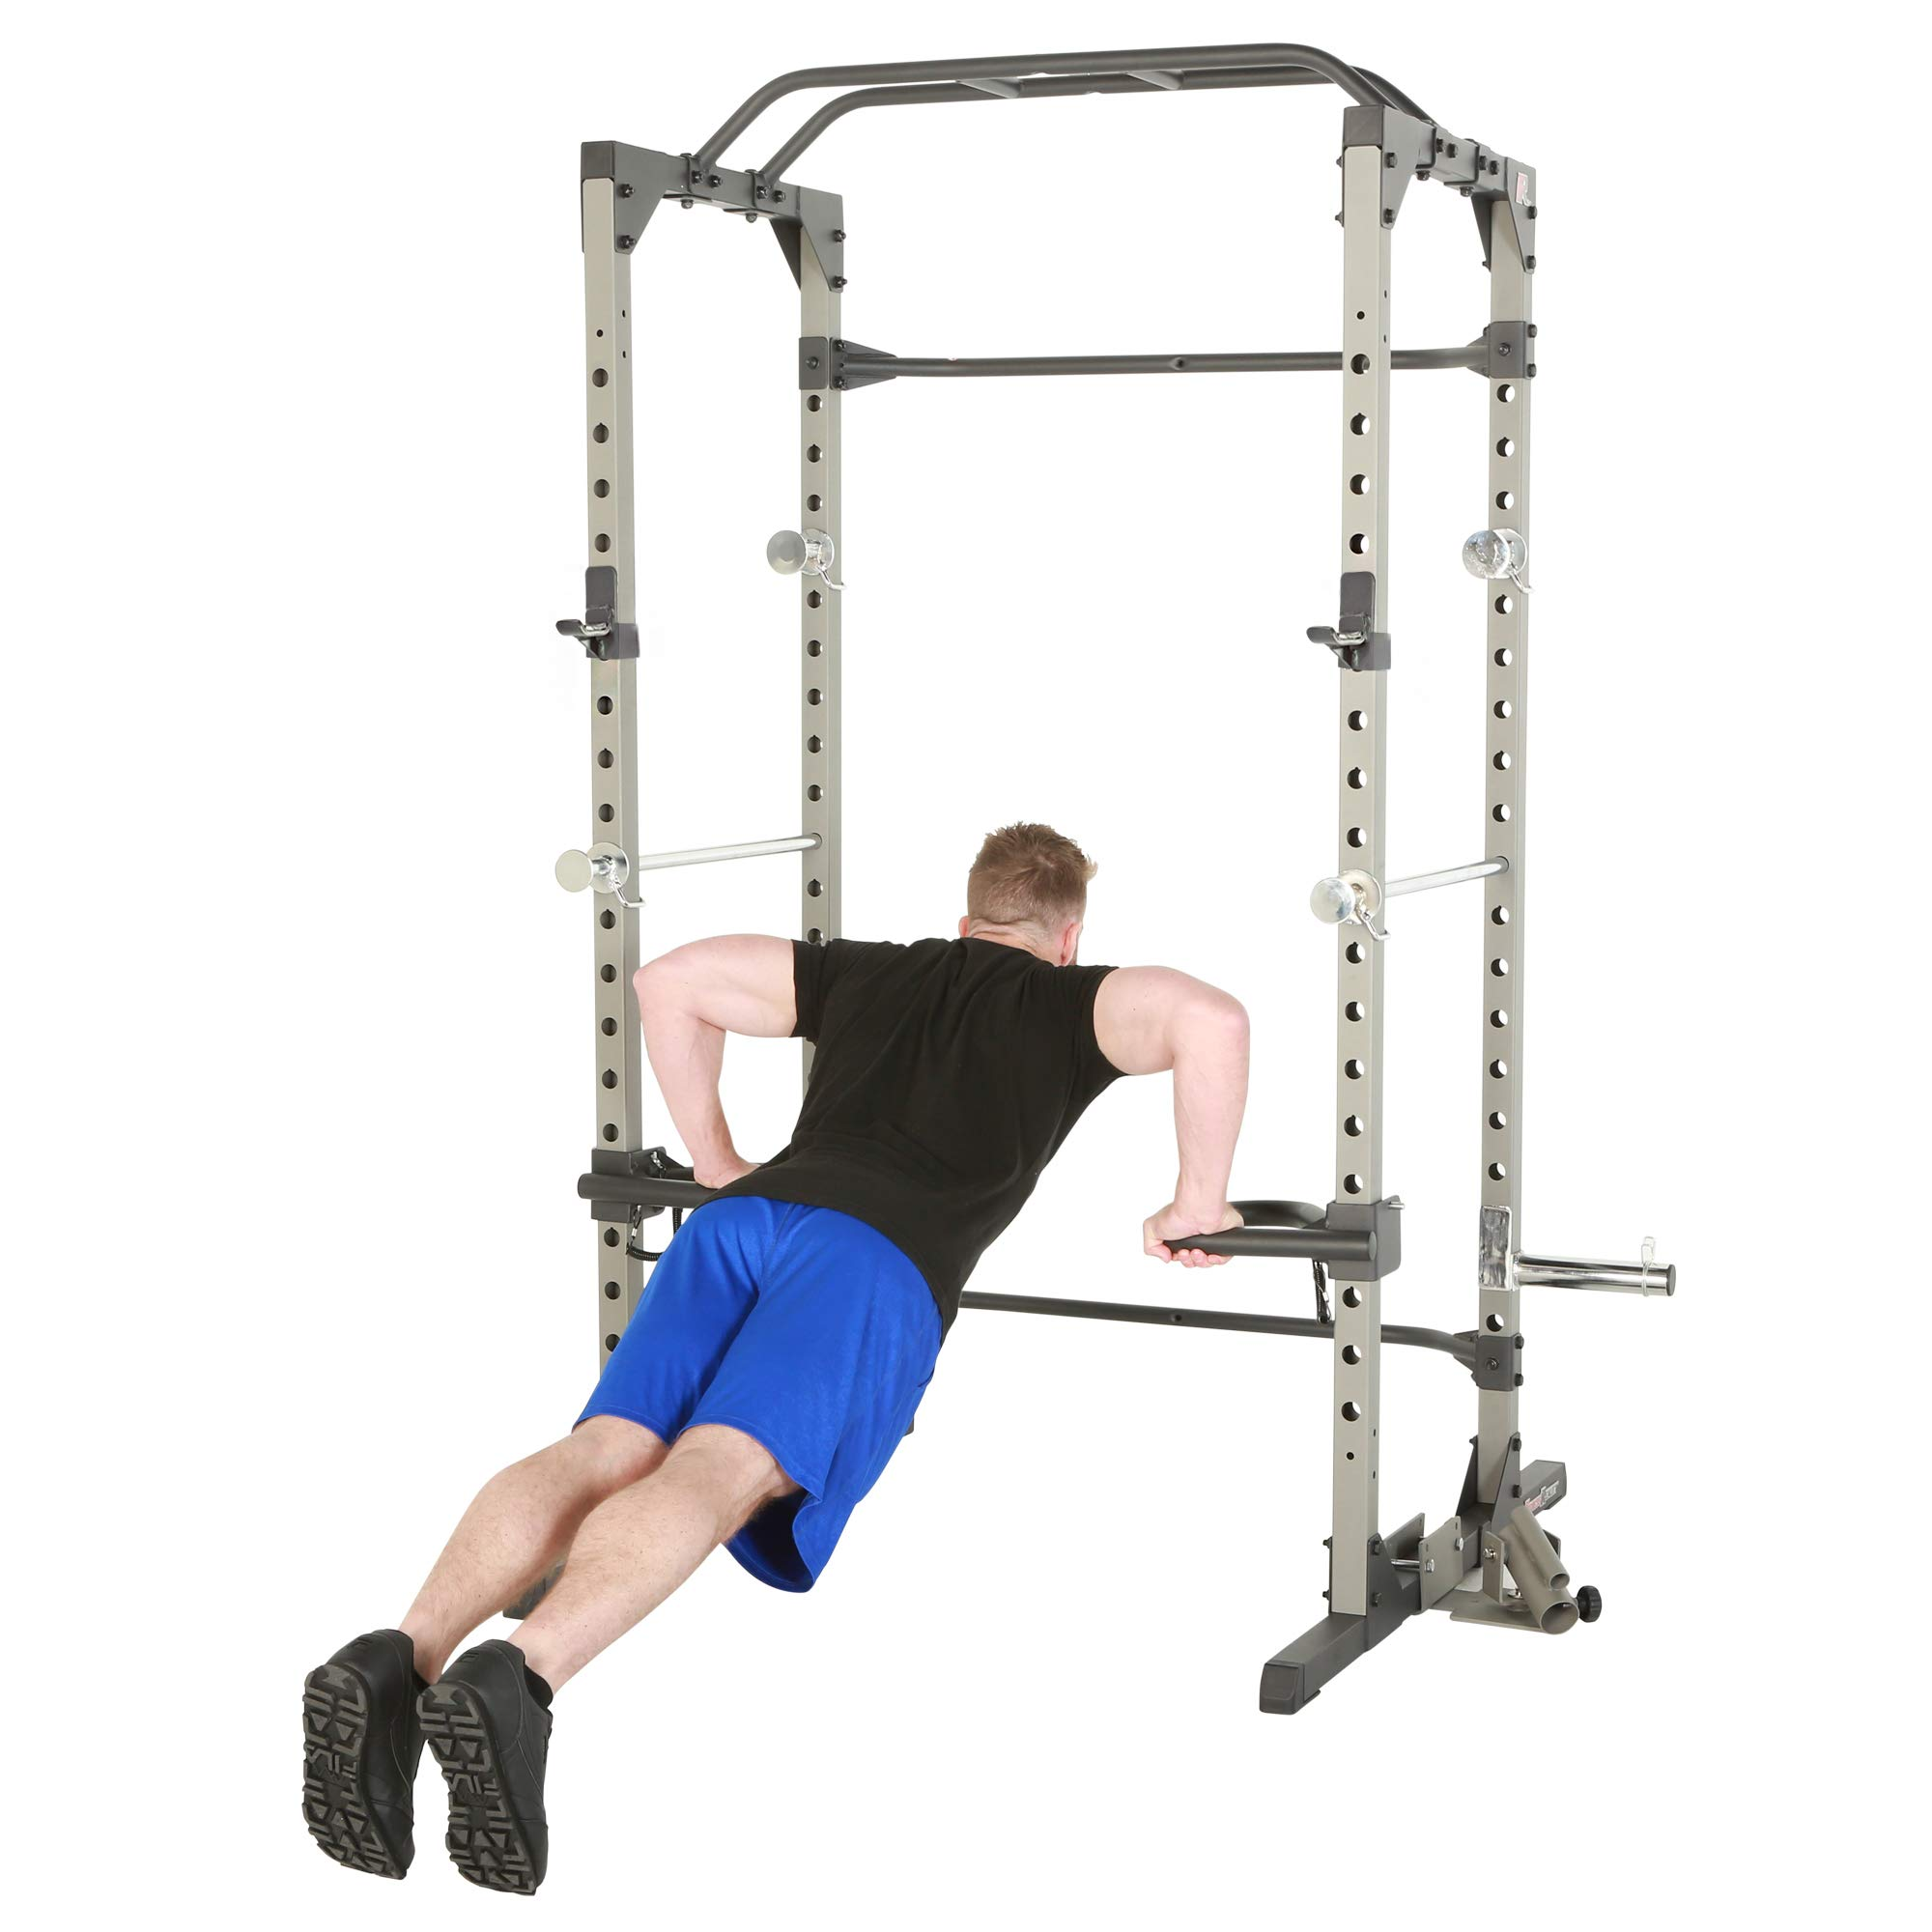 Fitness Reality 2819 Attachment Set for 2''x2'' Steel Tubing Power Cages by Fitness Reality (Image #10)